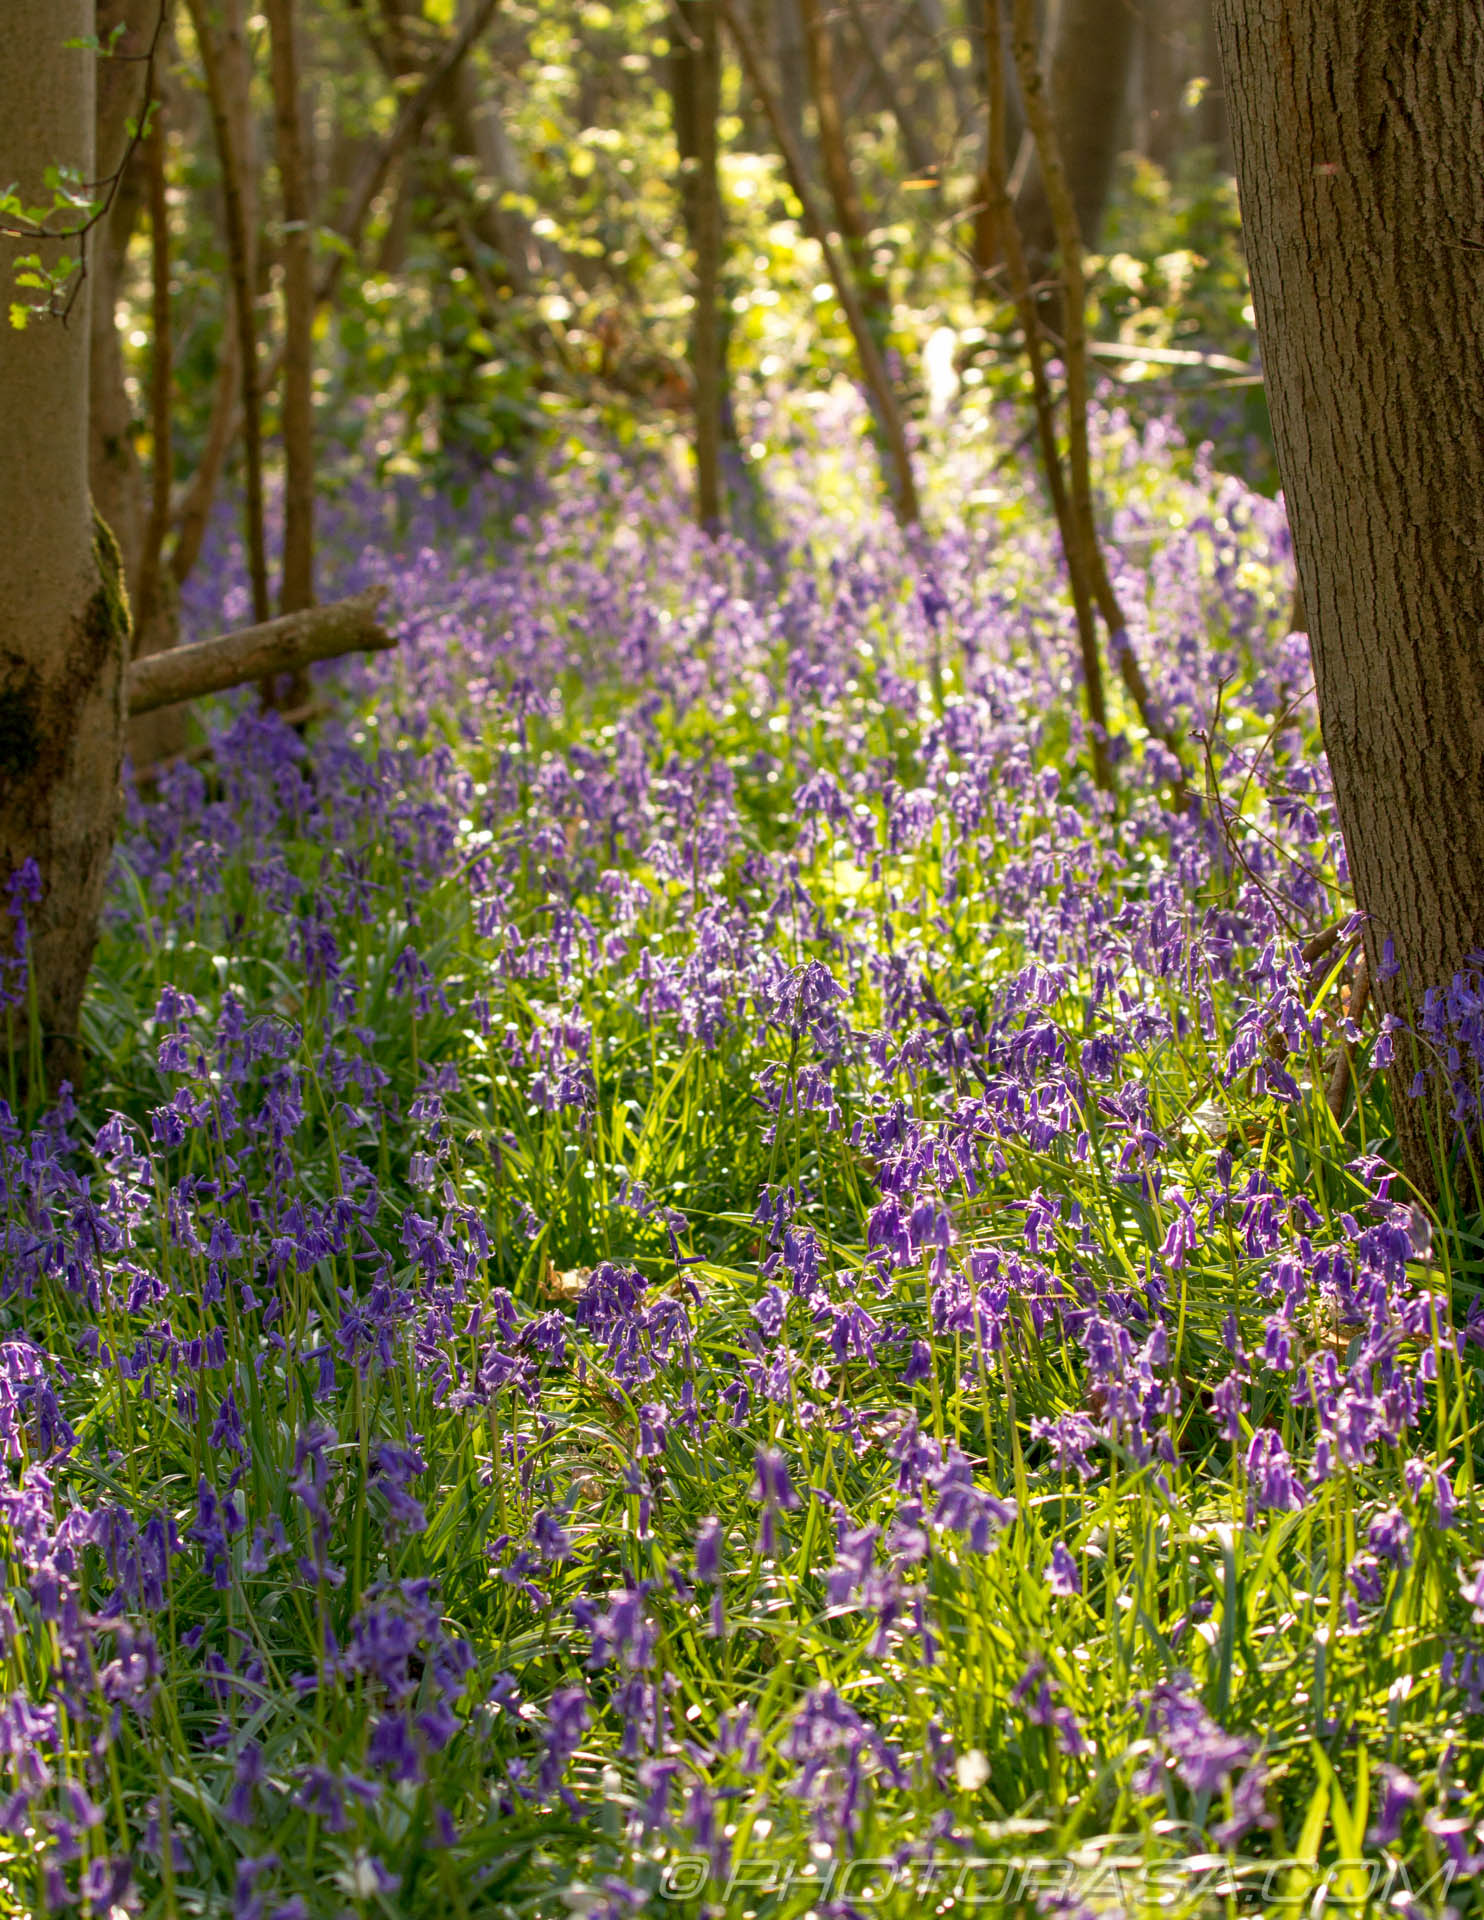 http://photorasa.com/bluebells-woods/forest-flowers/